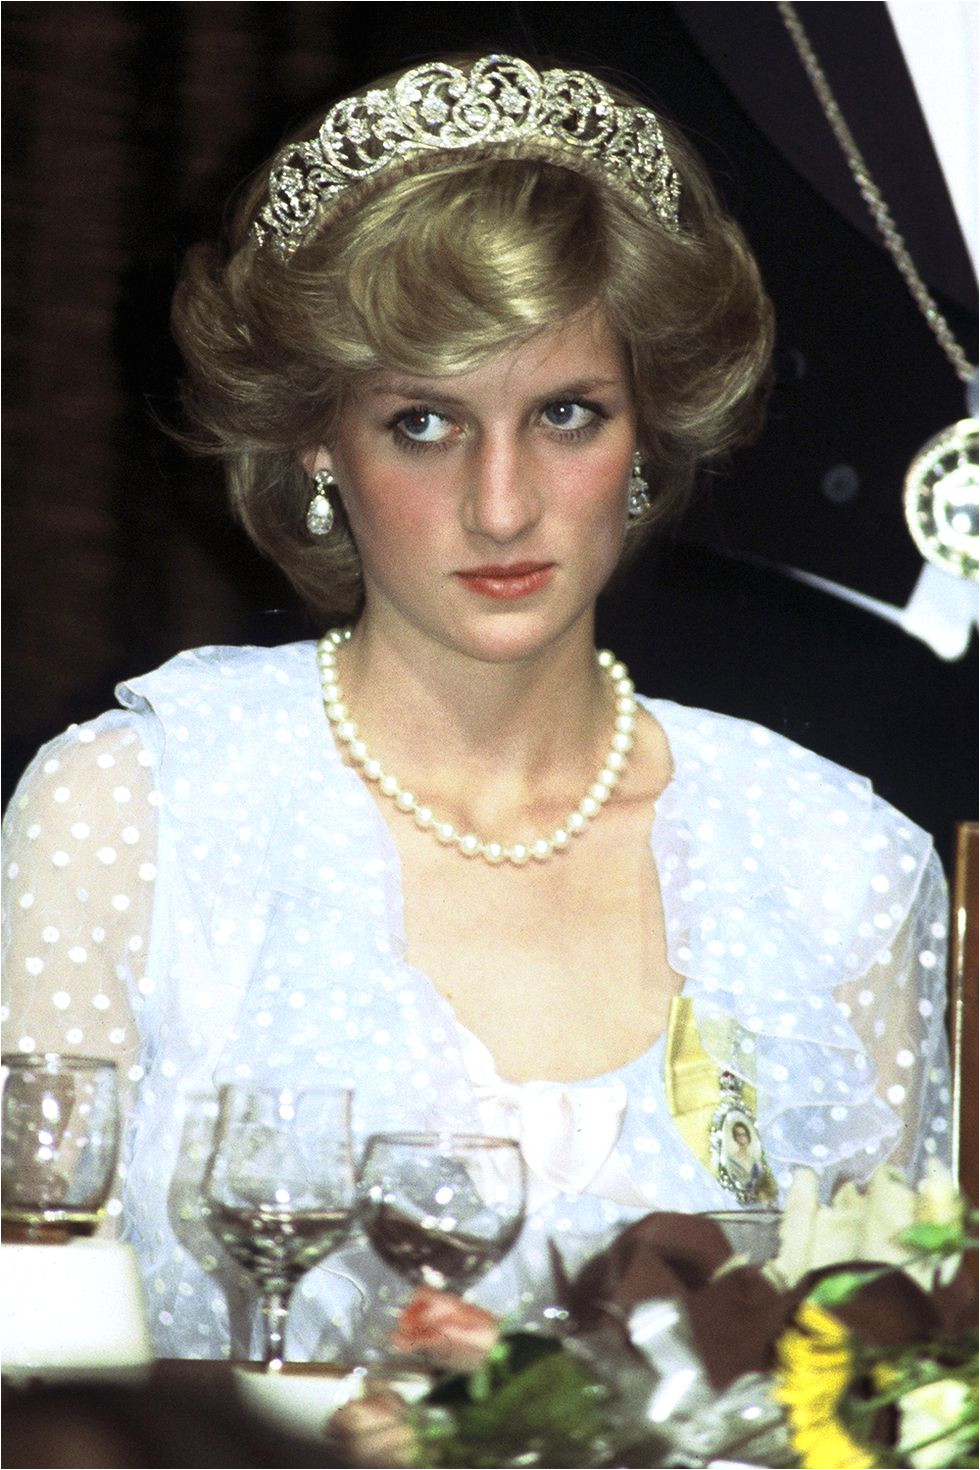 1993 With a more blown out hairstyle and a diamond tiara at an event while visiting New Zealand